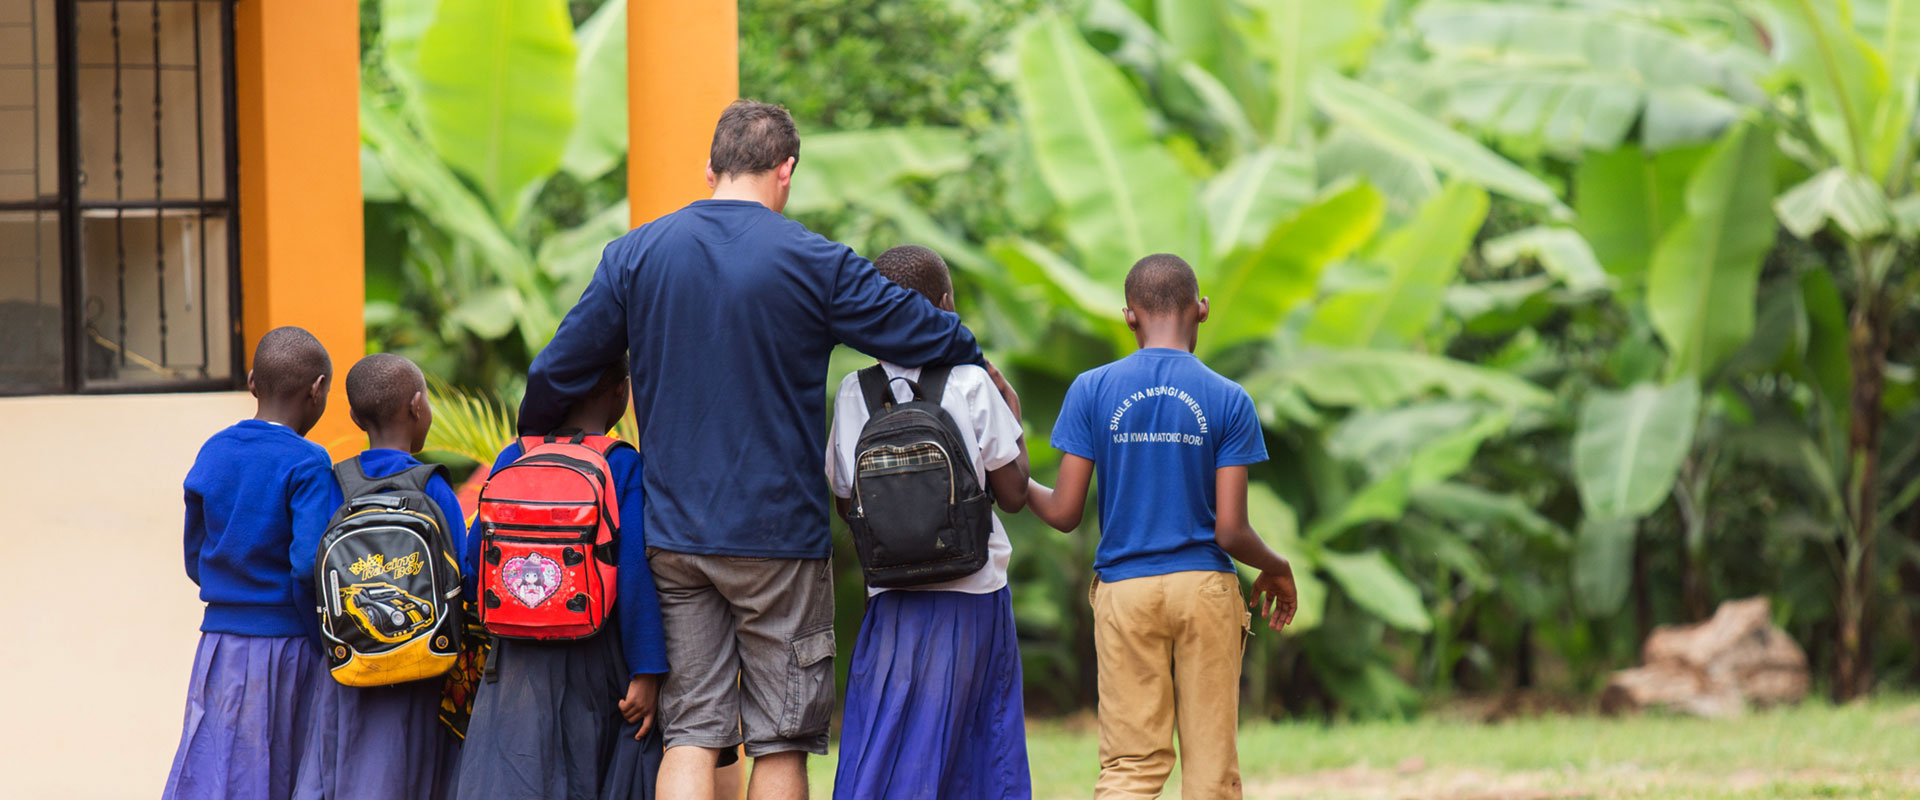 back view of a man volunteering for children in Tanzania